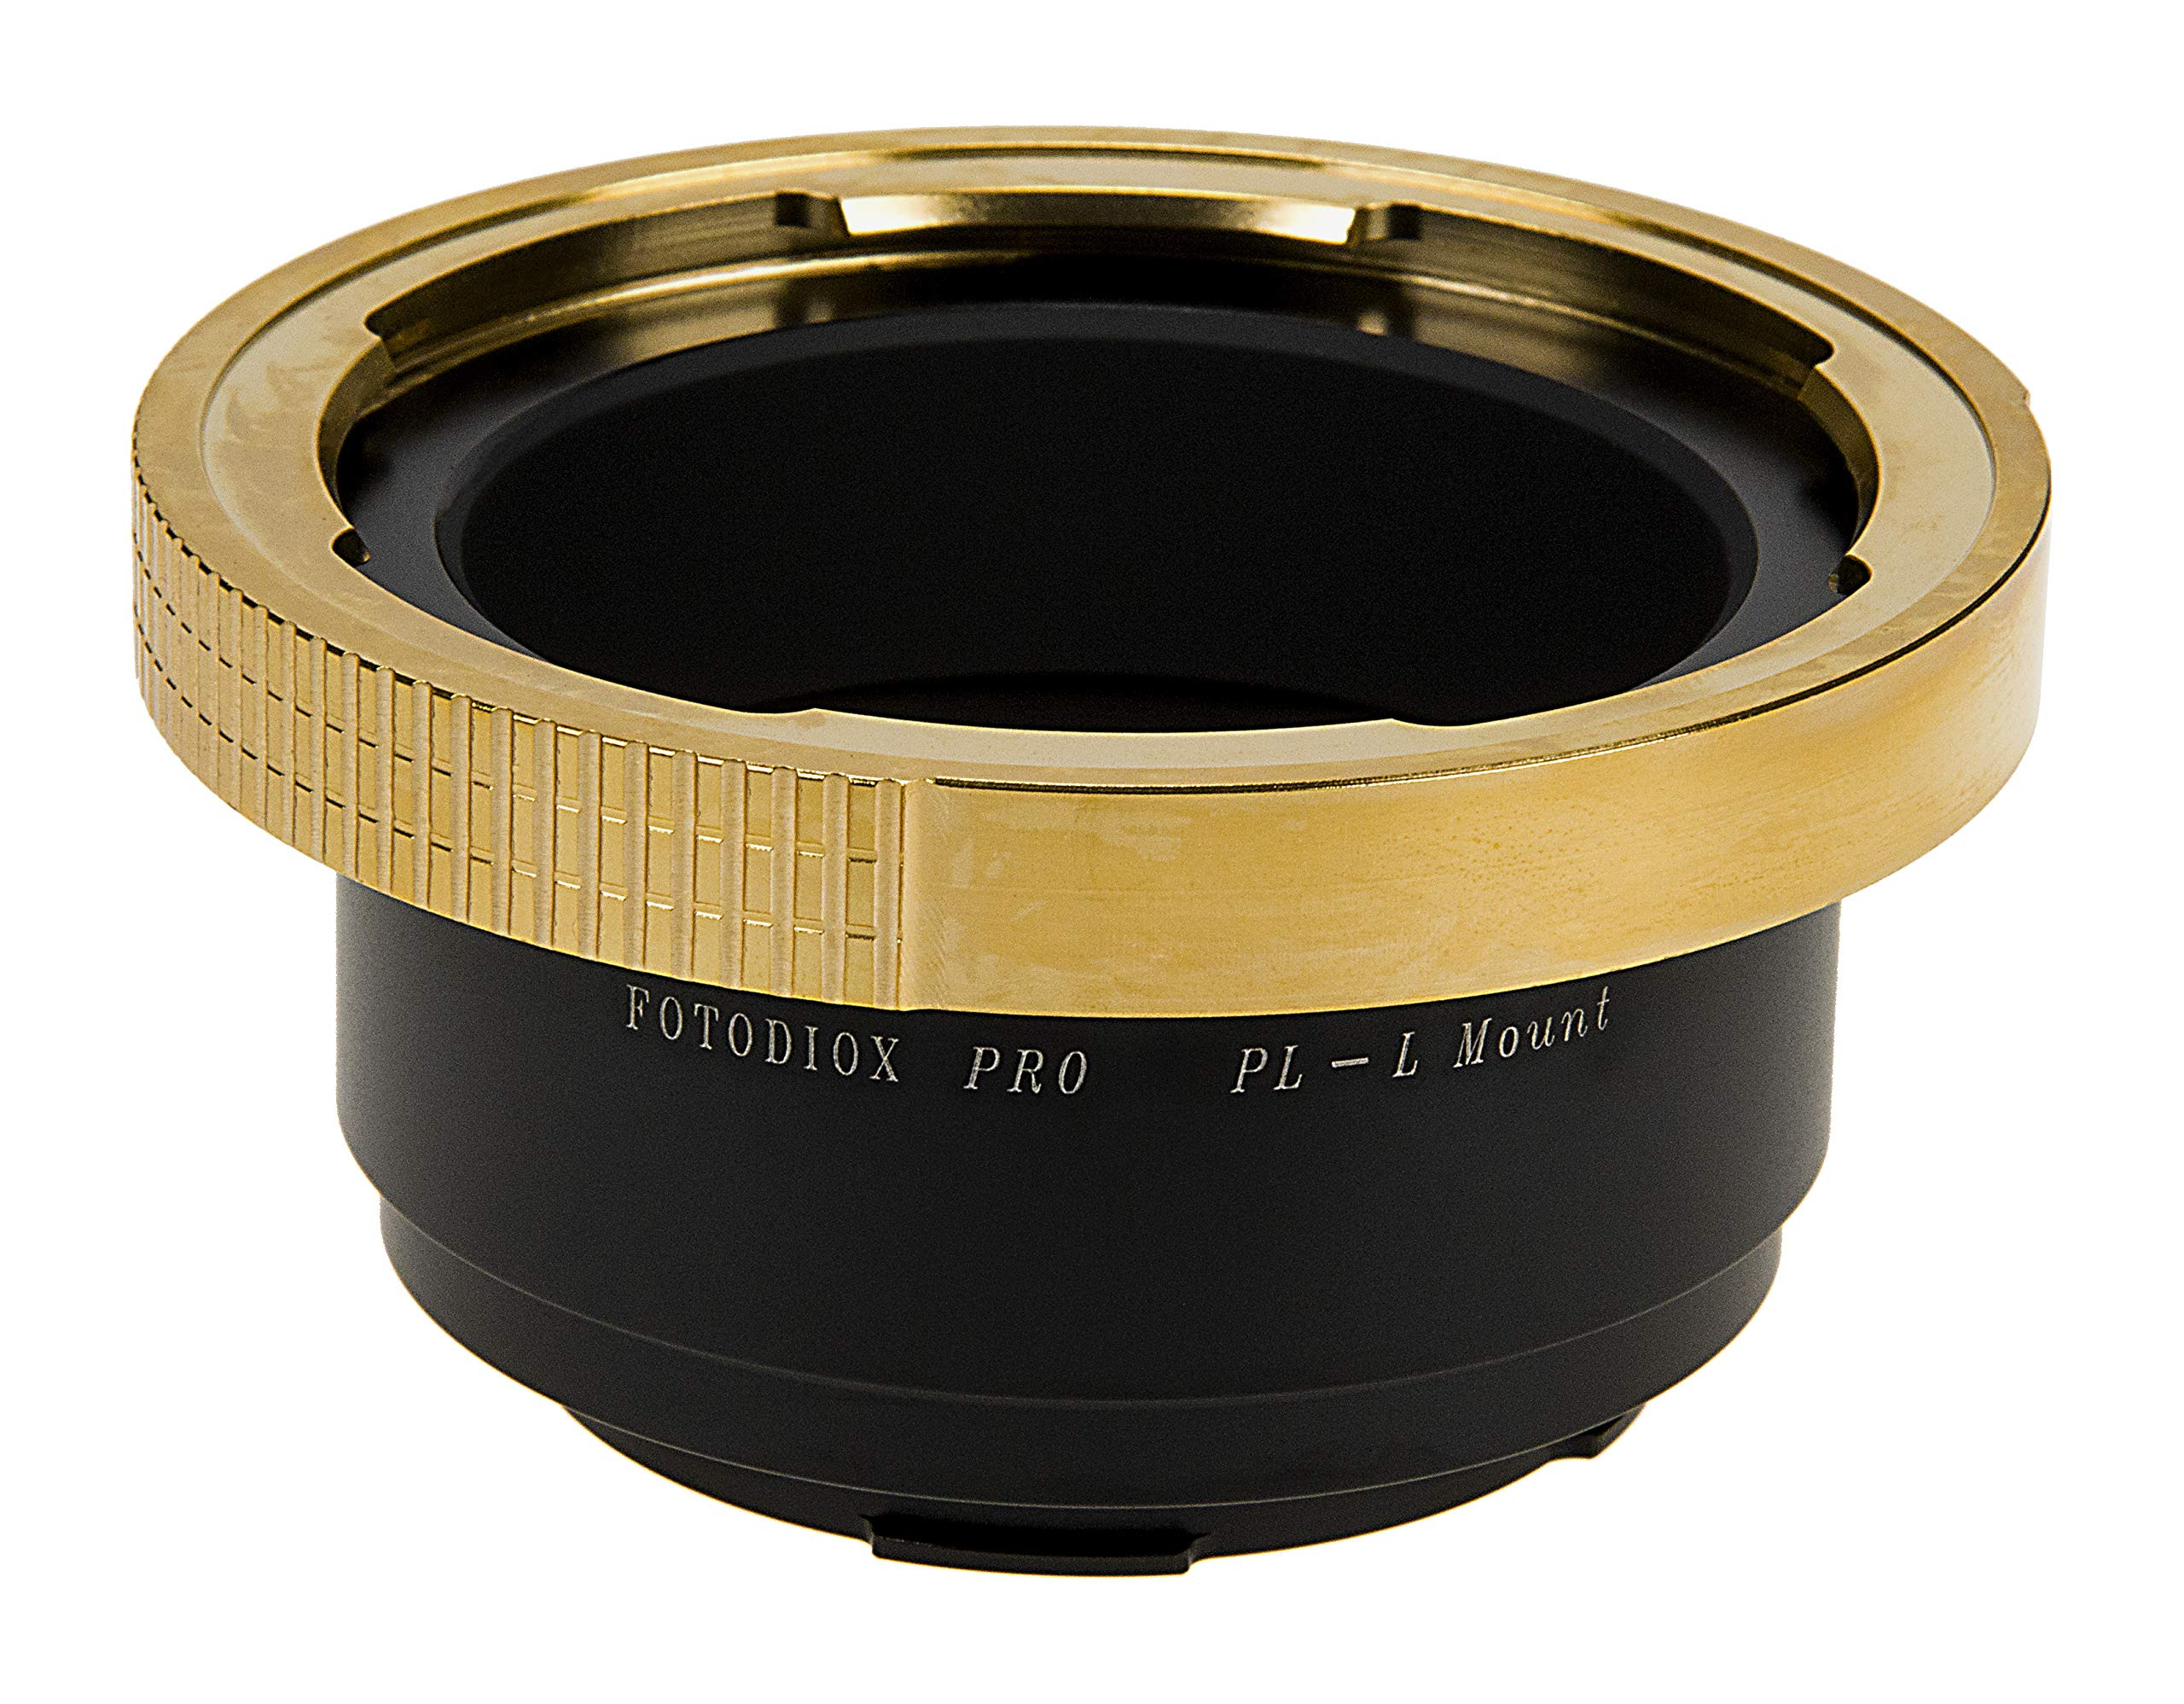 Fotodiox Pro Lens Mount Adapter Compatible with Arri PL (Positive Lock) Mount Lenses to Leica L-Mount (T-Mount) Mirrorless Camera Body by Fotodiox